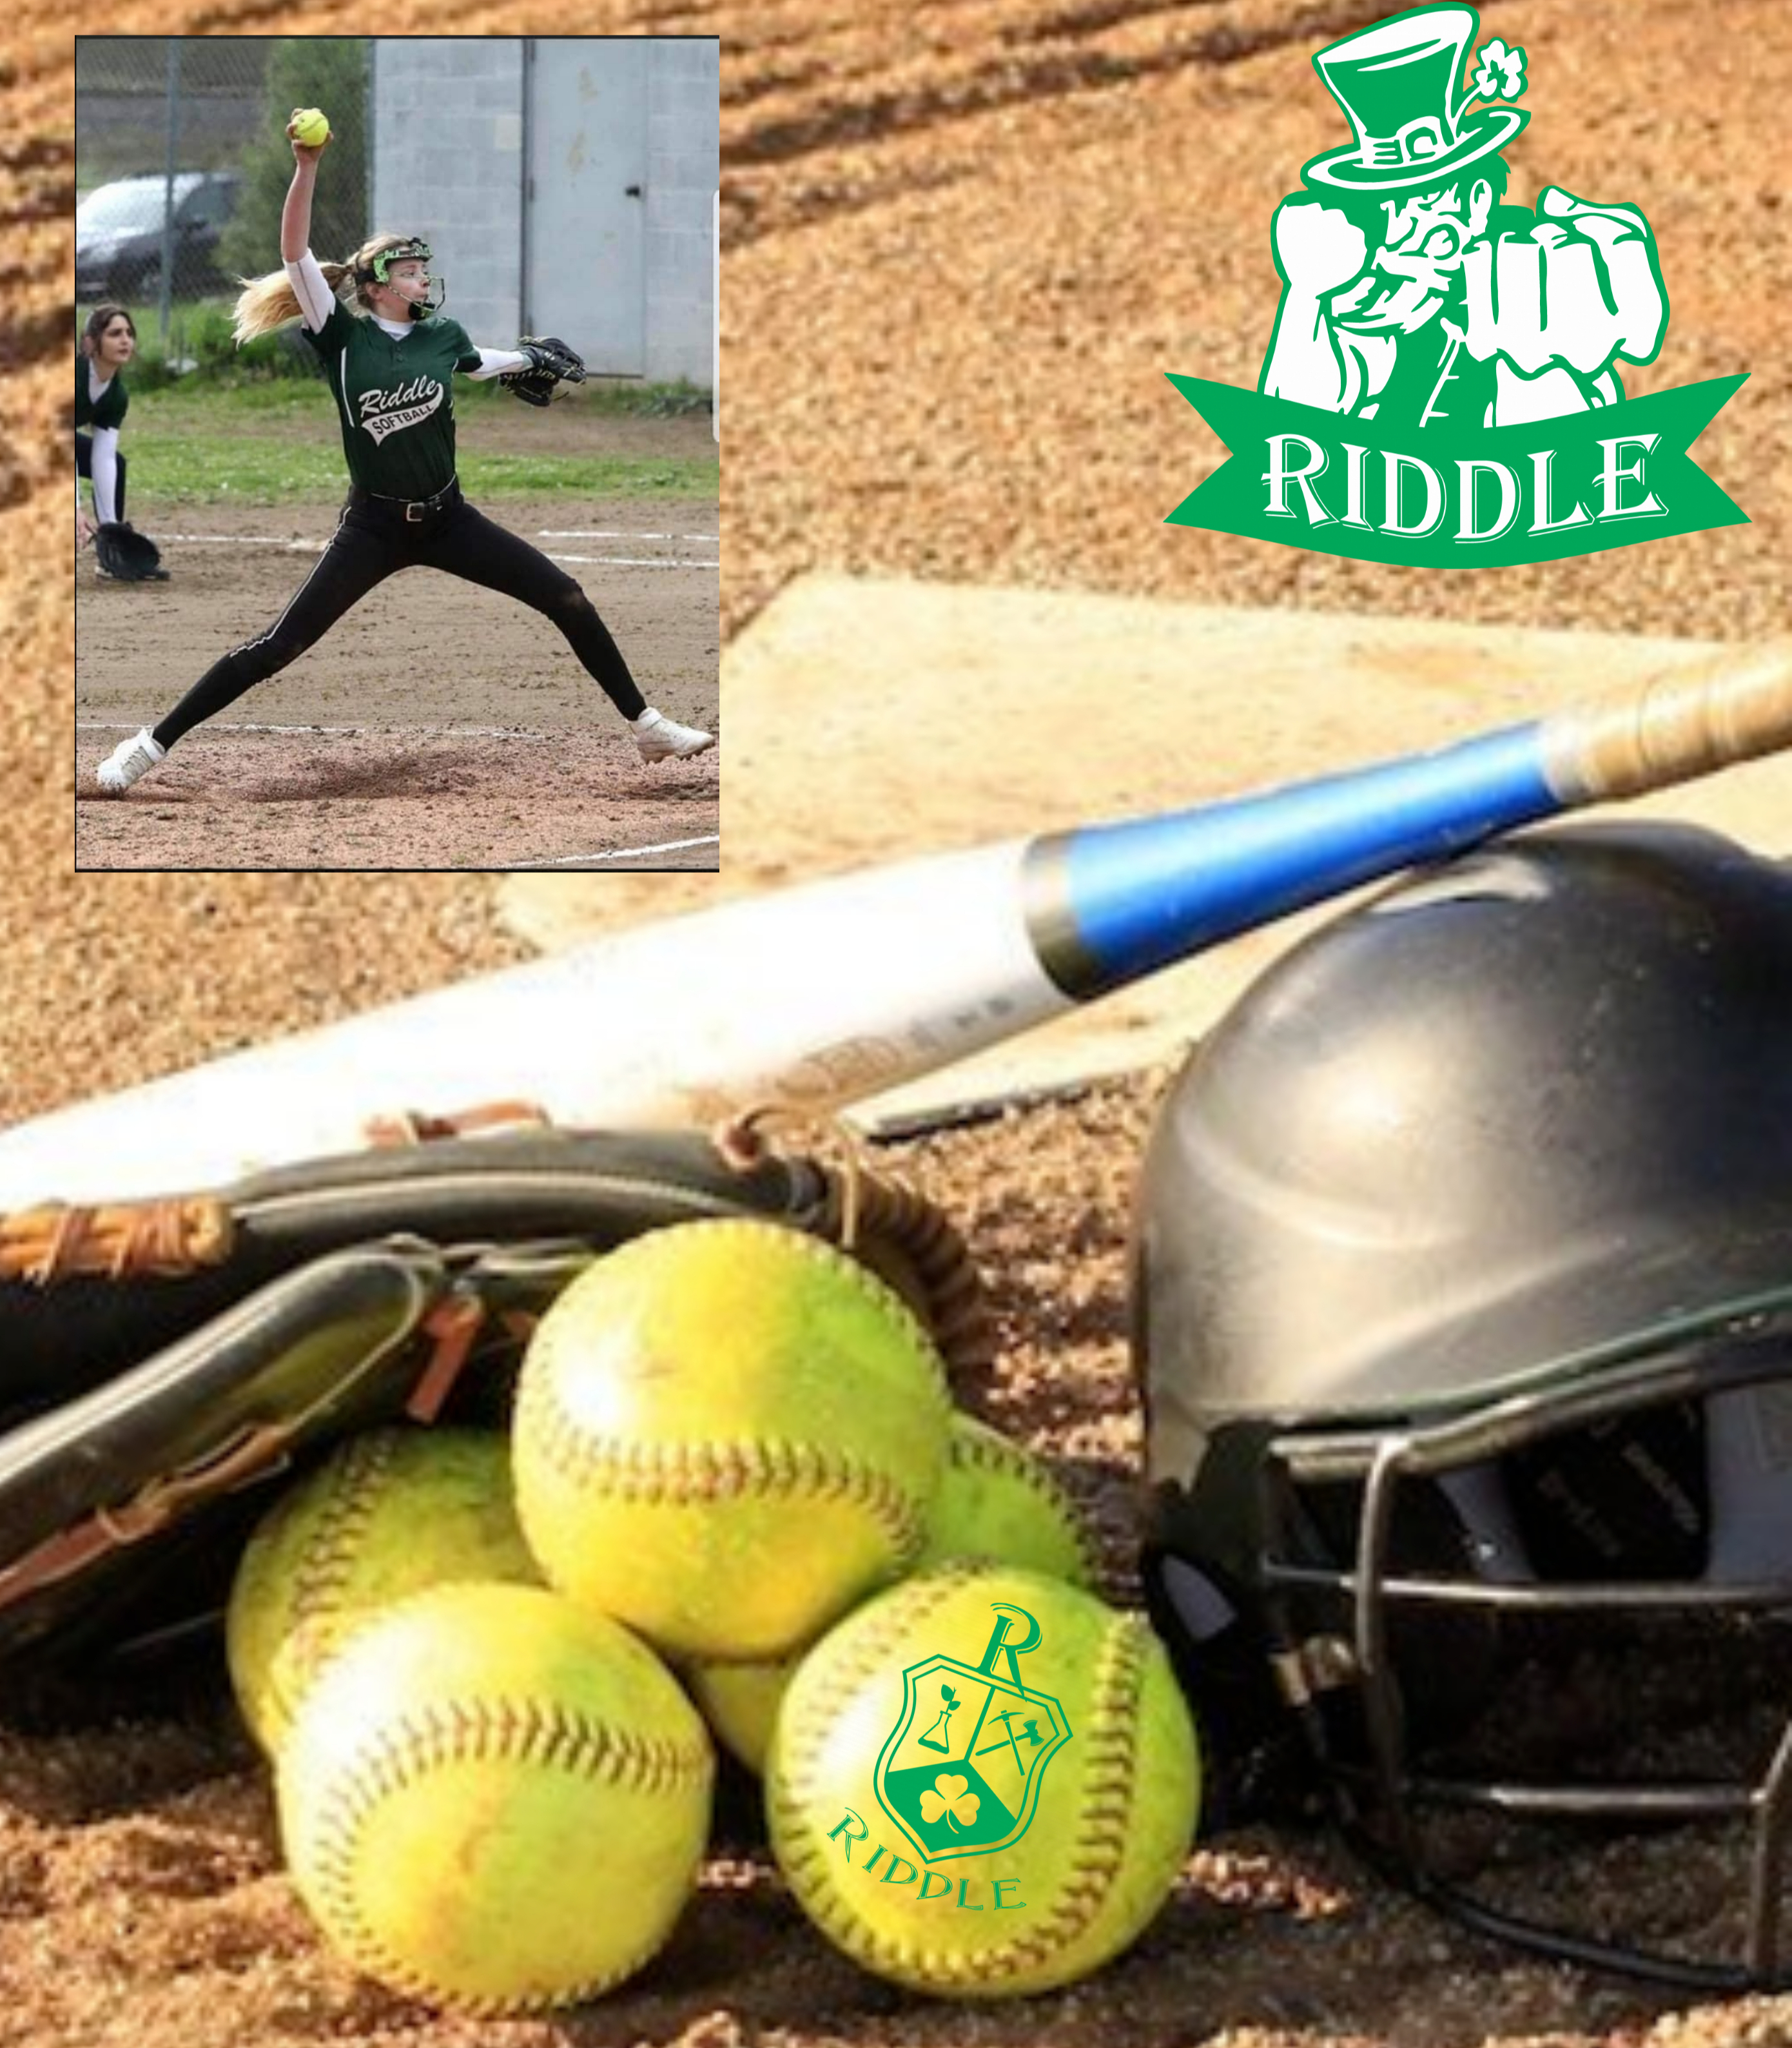 General Riddle Softball picture with balls, bat and helmet with a Riddle logo.